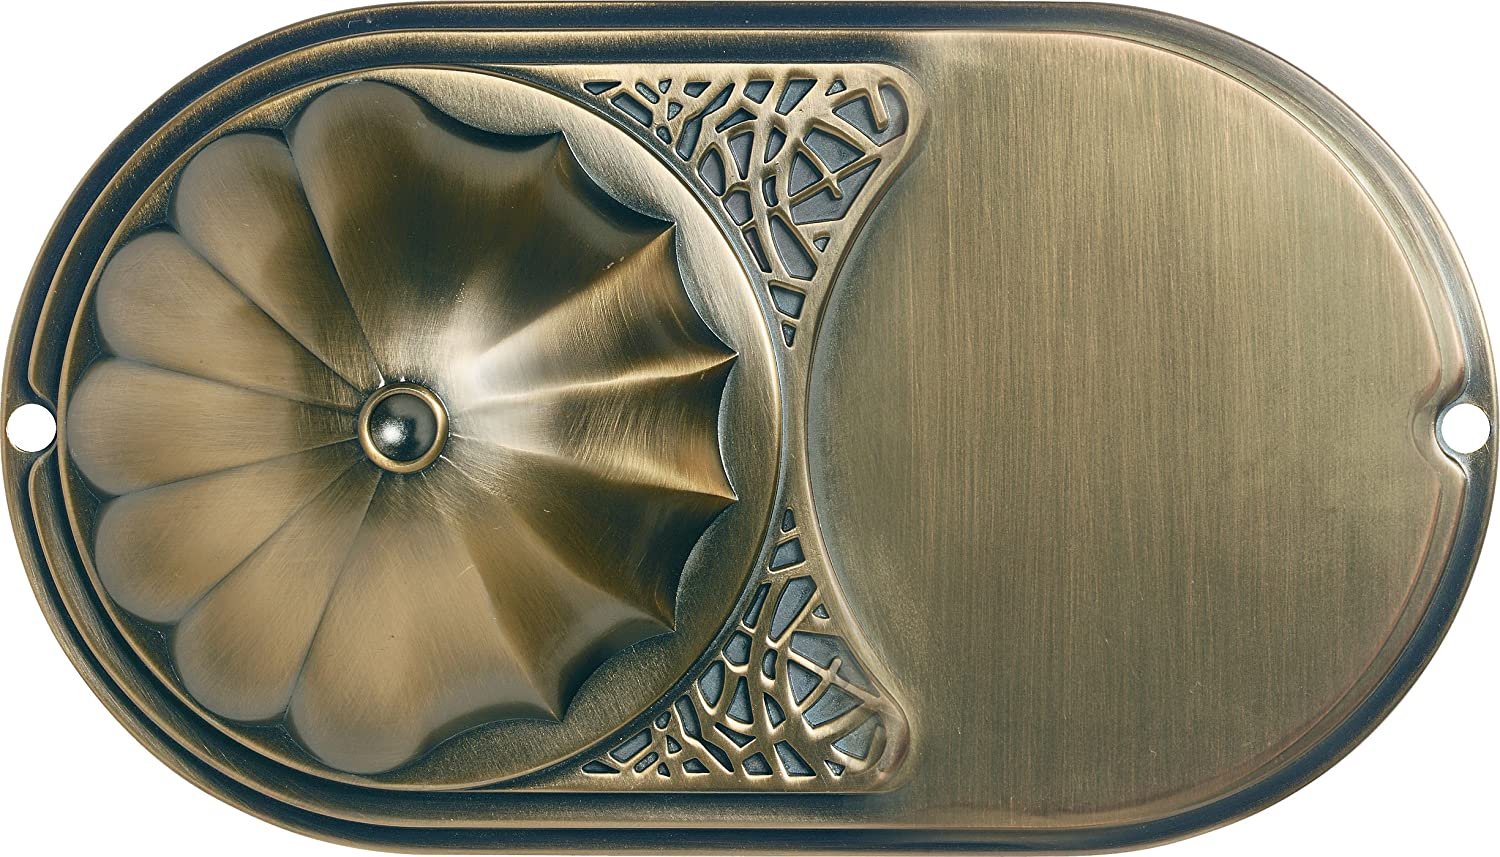 Antique Brass Finial Hunter Fan Amber Gradated with Weathered Bronze Hunter 28549 12-Inch Bowl